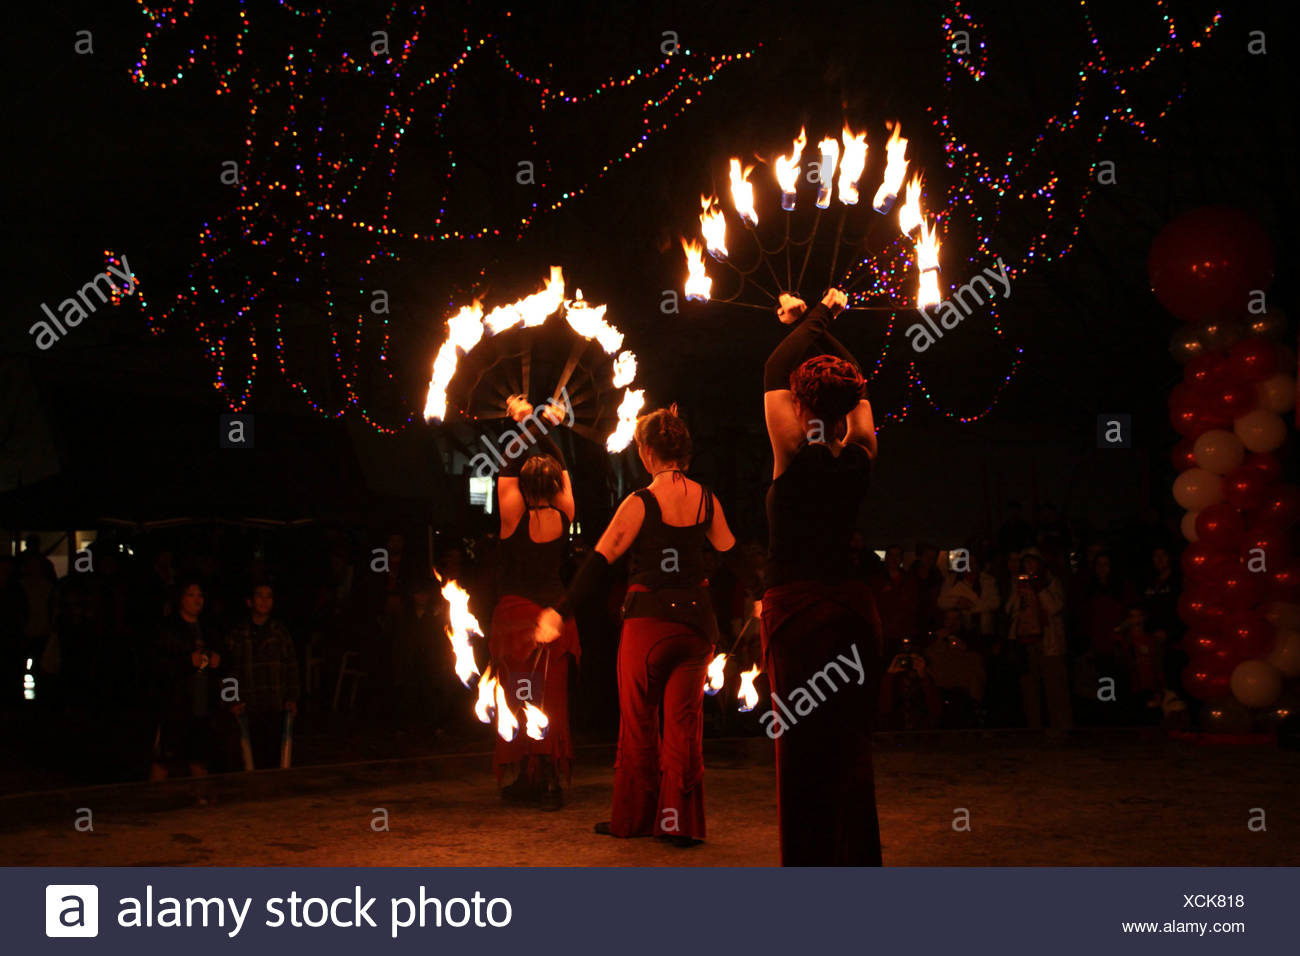 Fire dancing troupe performing at an outdoor nighttime celebration - Stock Image